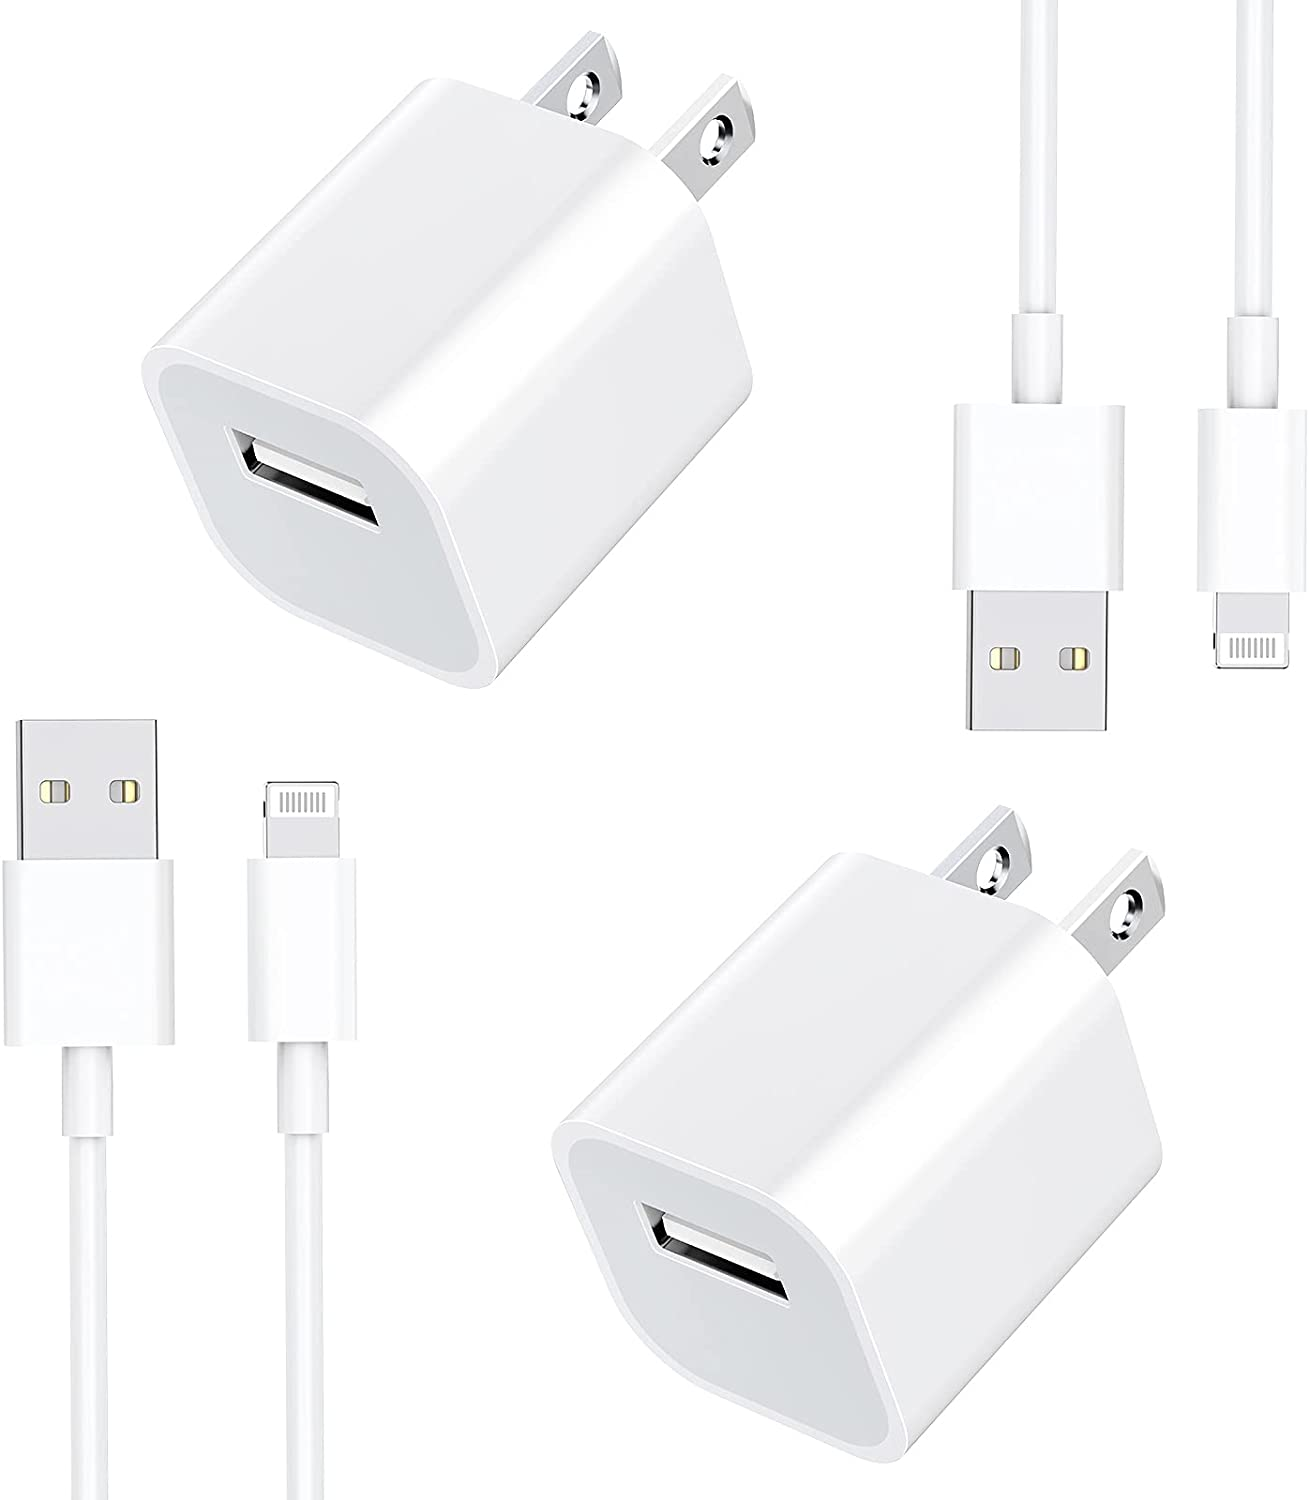 [Apple MFi Certified] iPhone Fast Charger, GEONAV 2 Pack 3FT Lightning to USB Quick Charging Data Sync Transfer Cable with USB Power Rapid Wall Charger Travel Plug Compatible for iPhone/iPad/AirPods